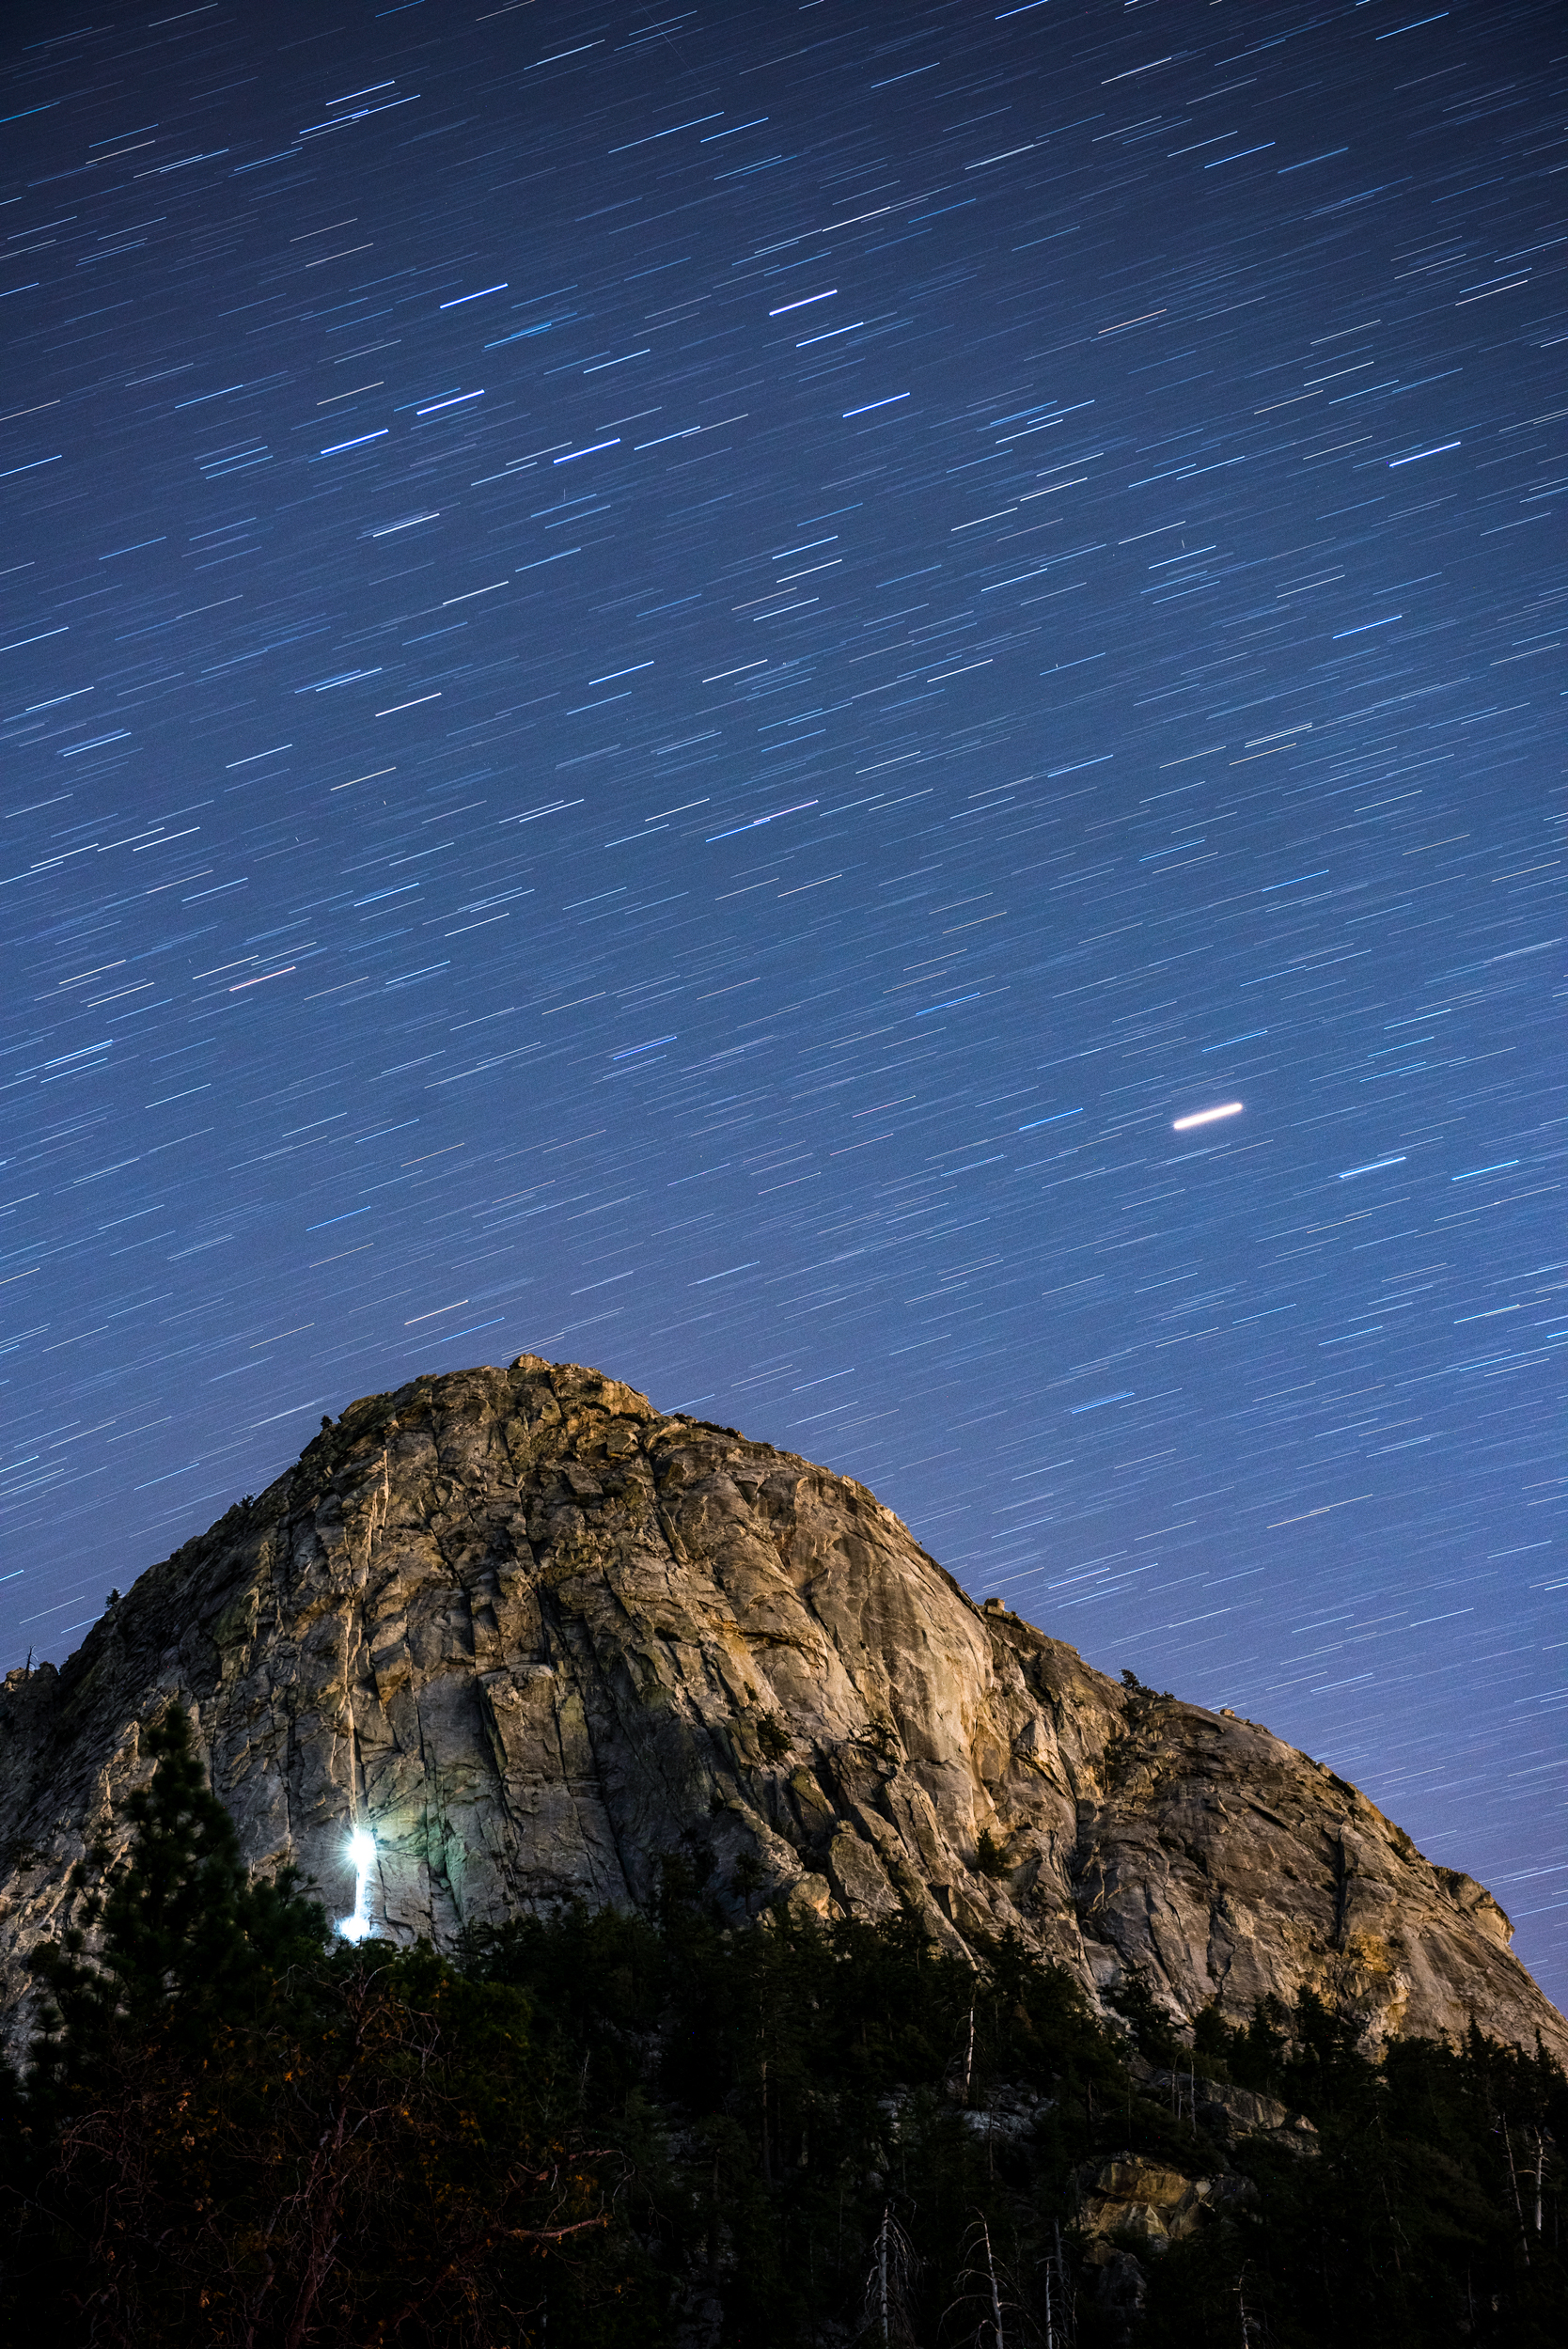 San-Berndino-Rock-Climbers-and-Star-Trails.jpg